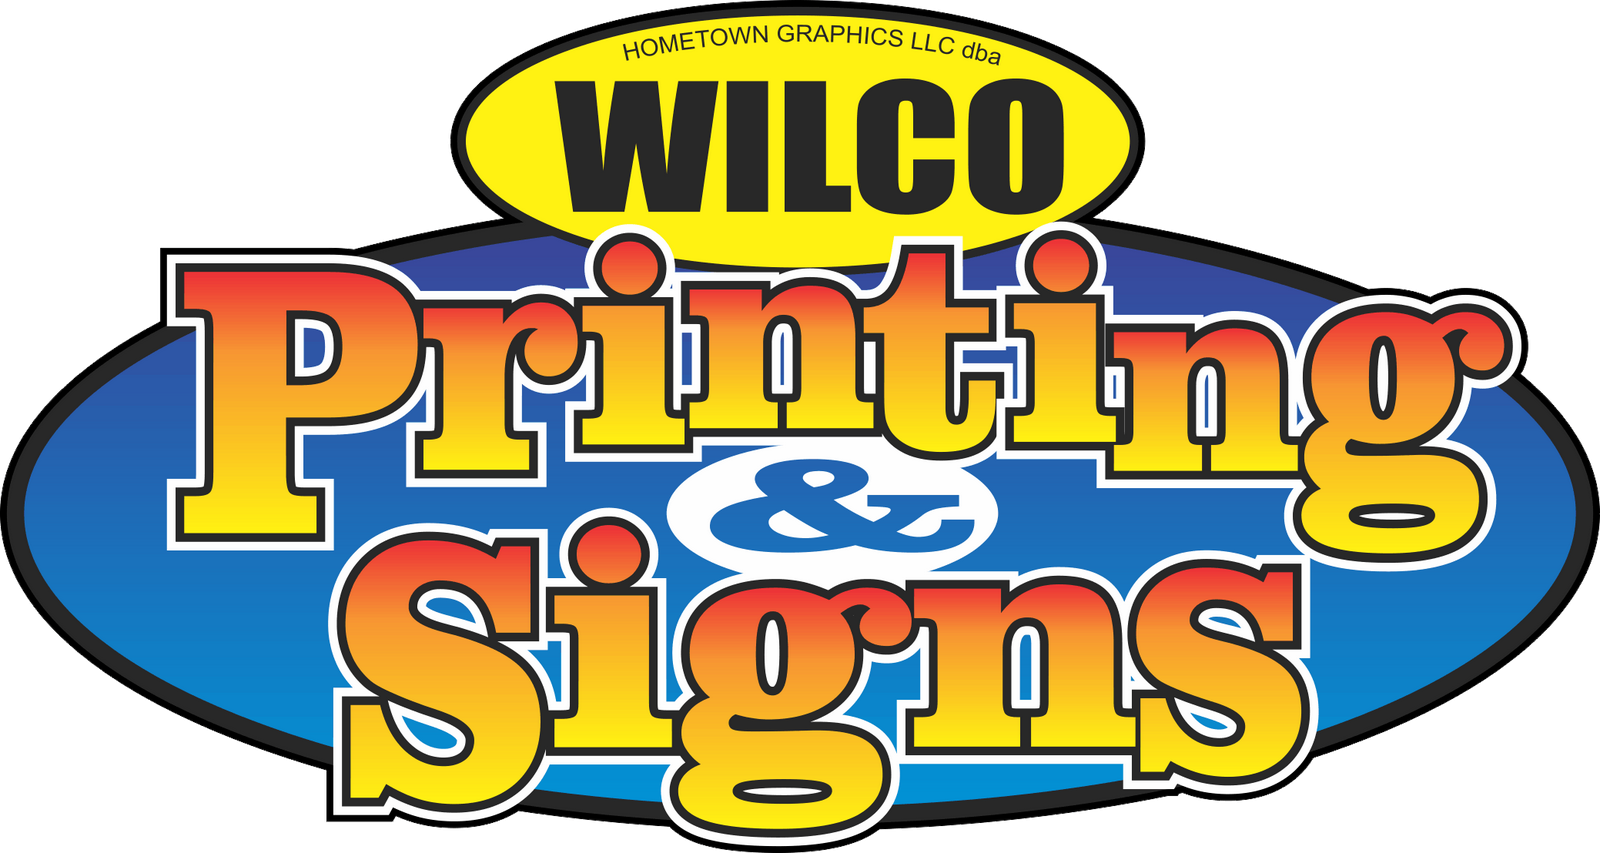 Wilco Printing & Signs Serving  Arcade, Athens, Buford, Braselton,  Commerce, Gainesville, Hoschton,  Jefferson,  Oakwood, and other North Georgia locations. We provide Banners,  Commercial Printing , Wide Format Printing,  Signs, Vehicle Fleet Graphics, Wraps, Vinyl Graphics, Vinyl Decals